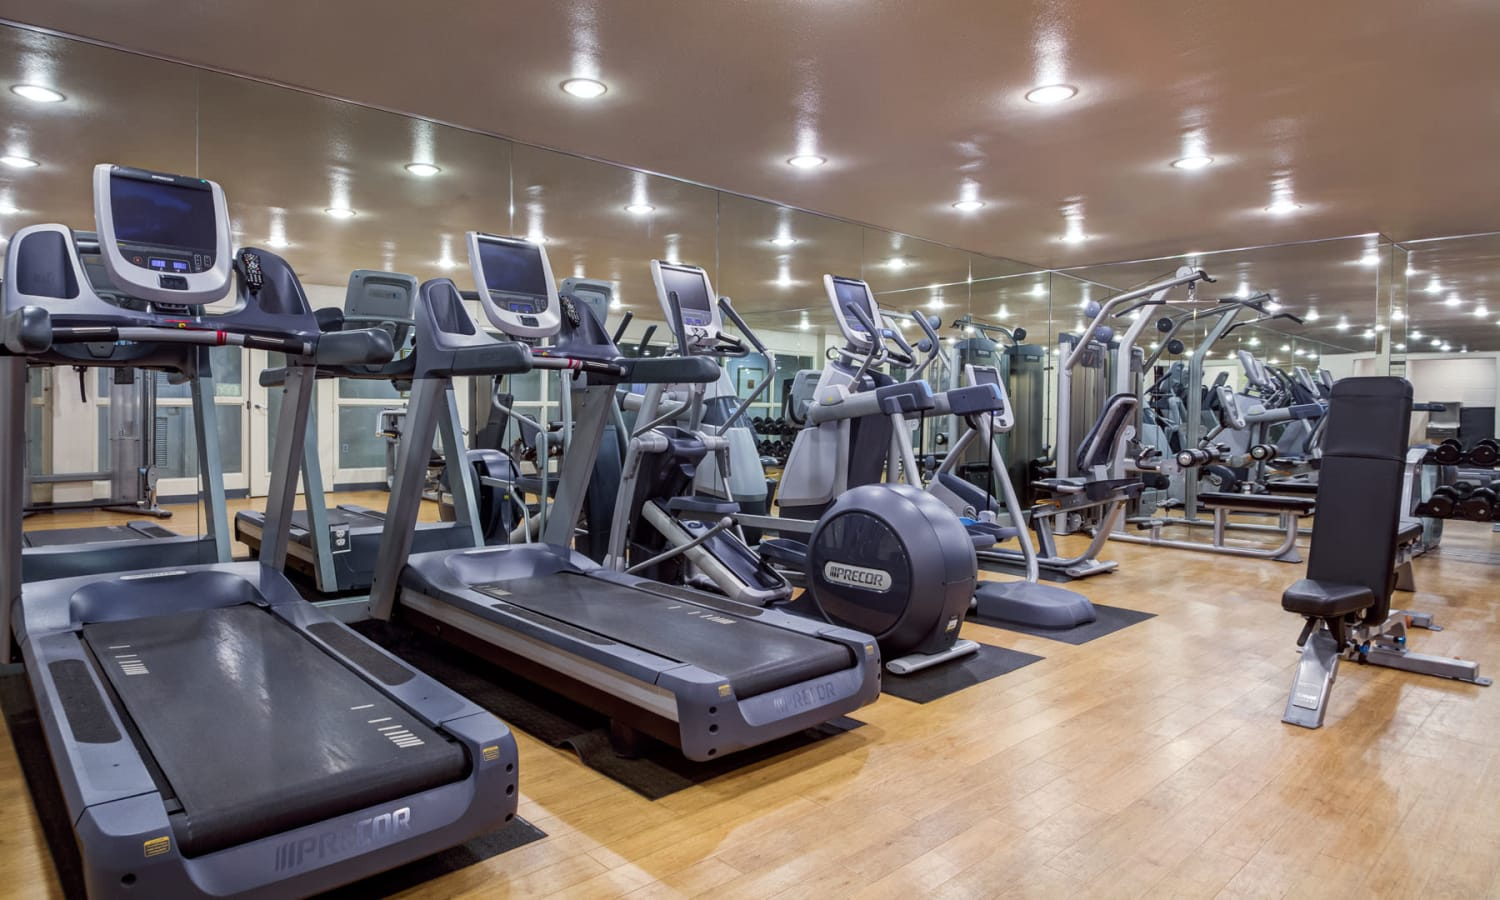 Well-equipped onsite fitness center for resident use at L'Estancia in Studio City, California